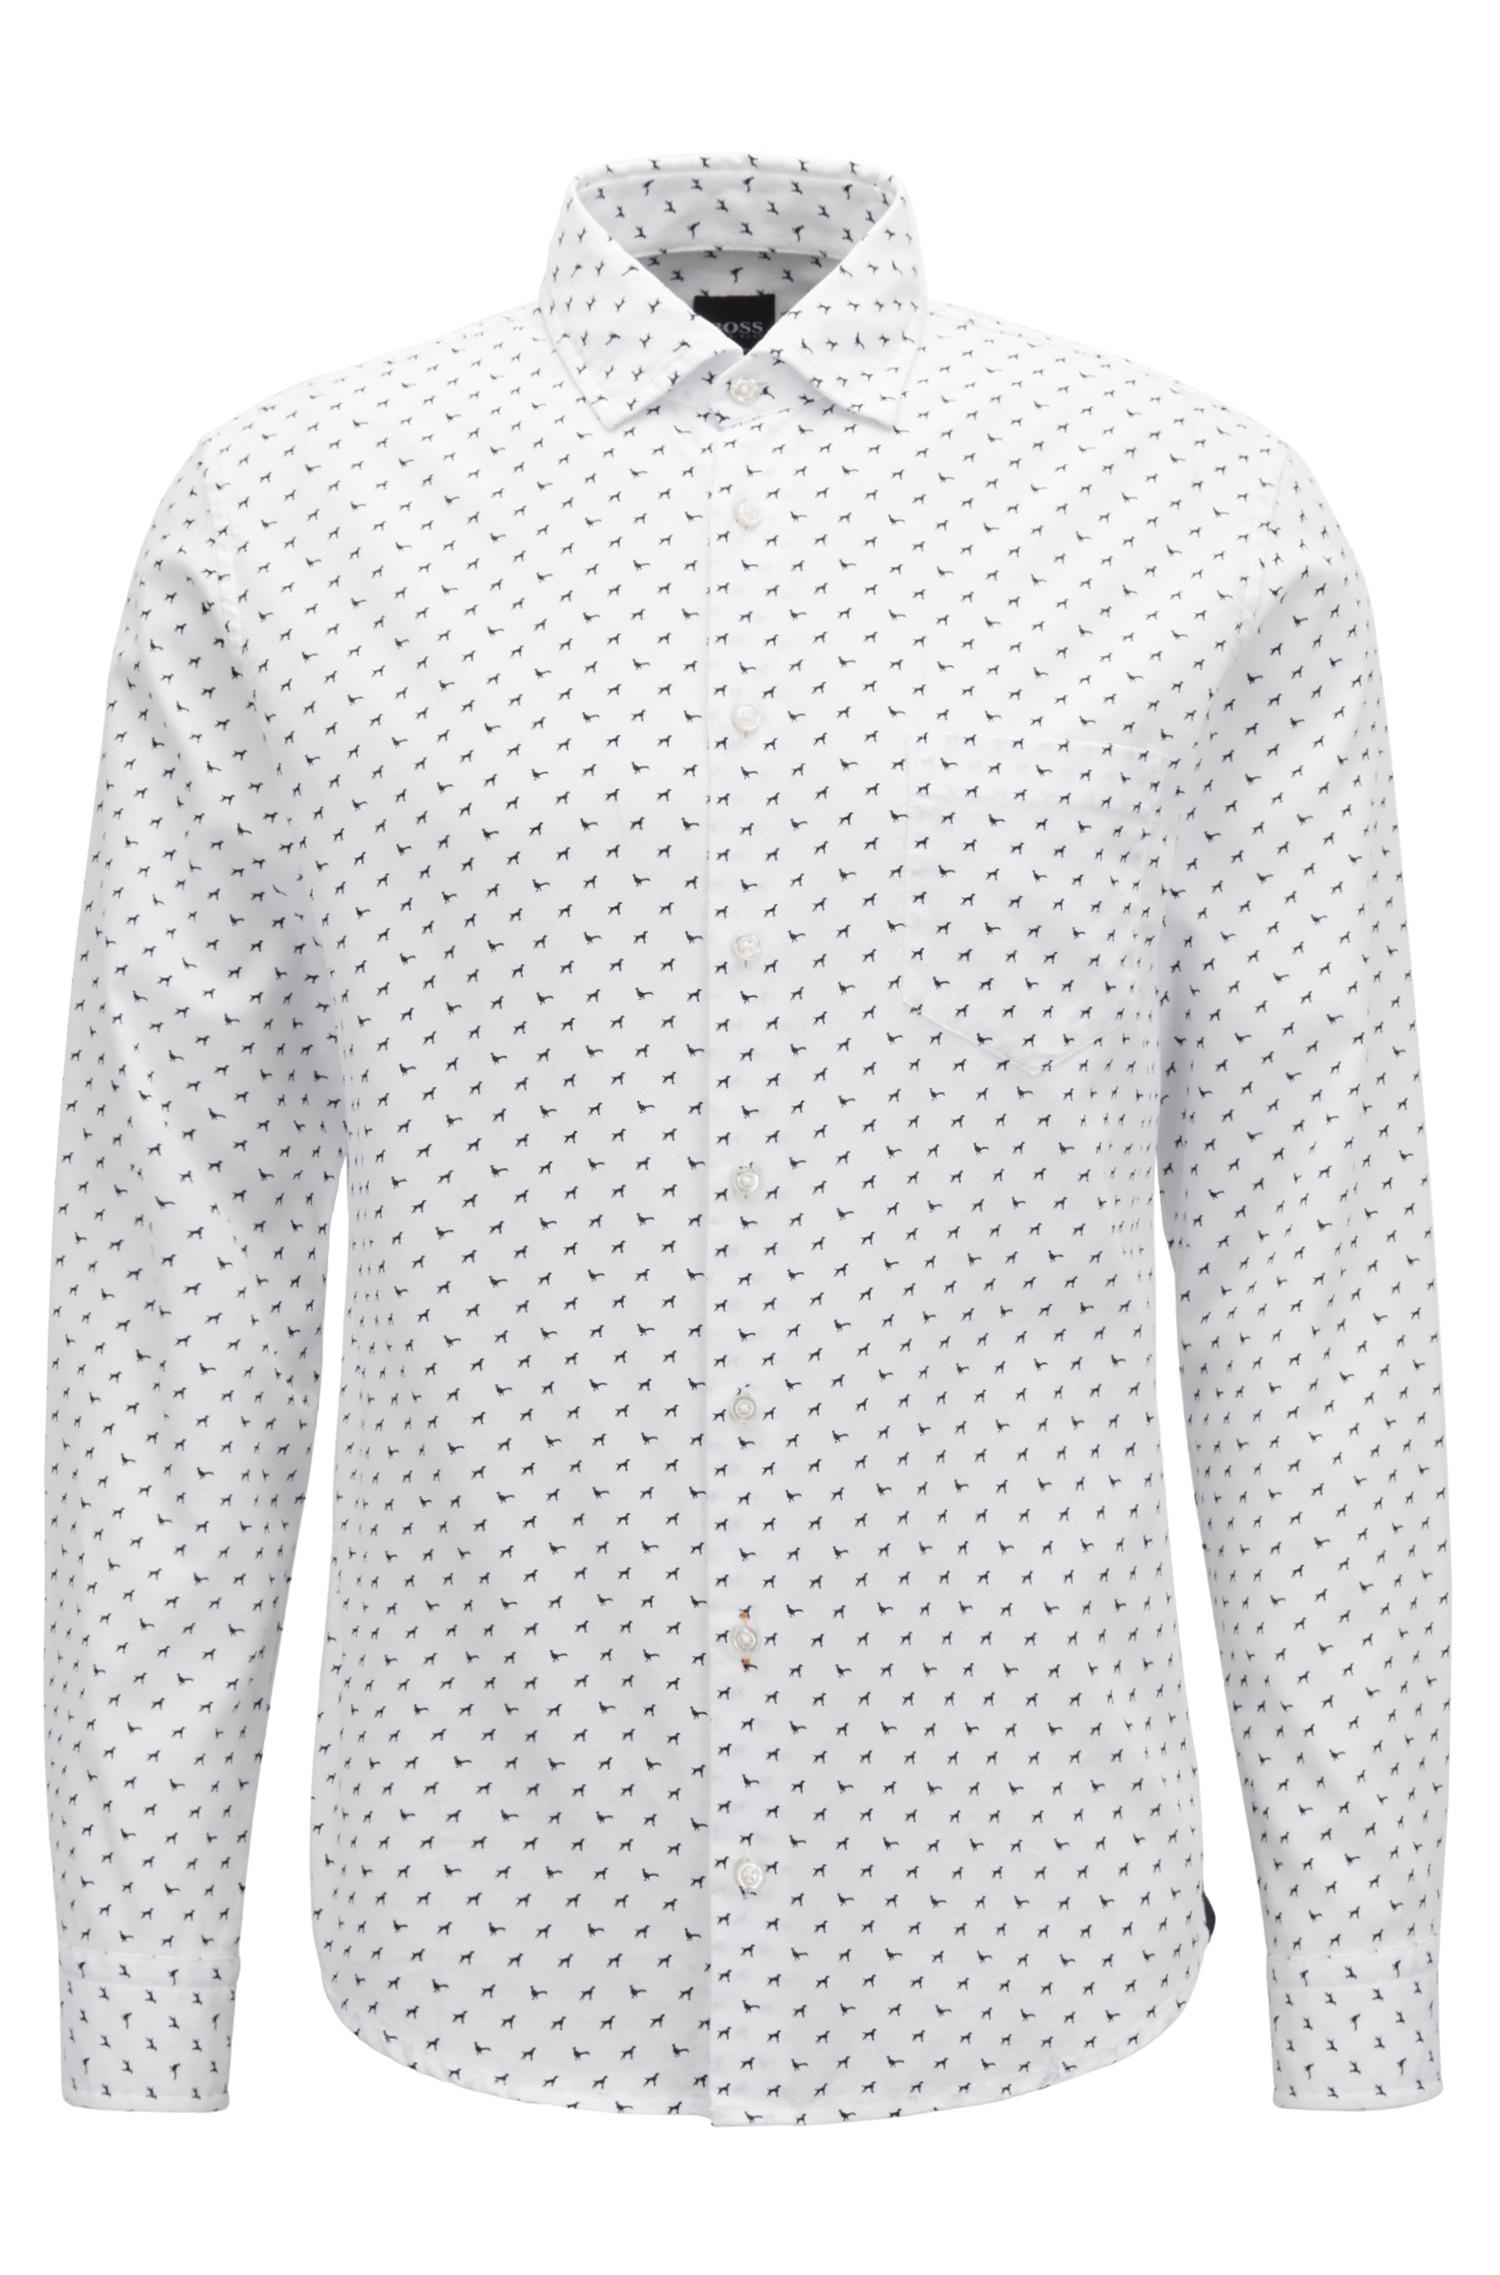 82458419b BOSS Slim-fit Printed Cotton Shirt in White for Men - Lyst